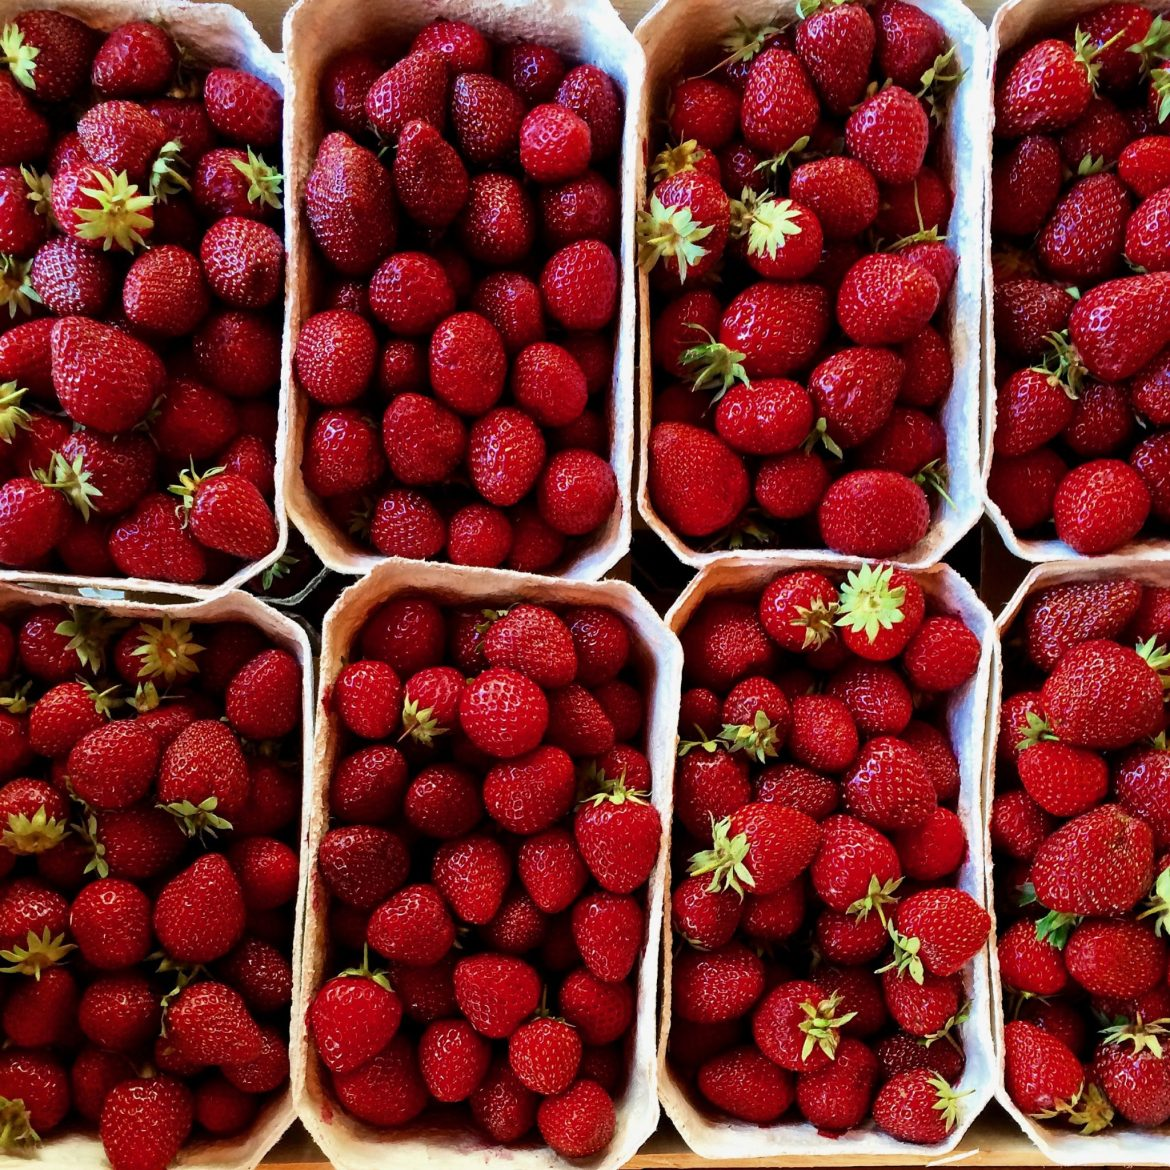 Punnets of strawberries taken from above